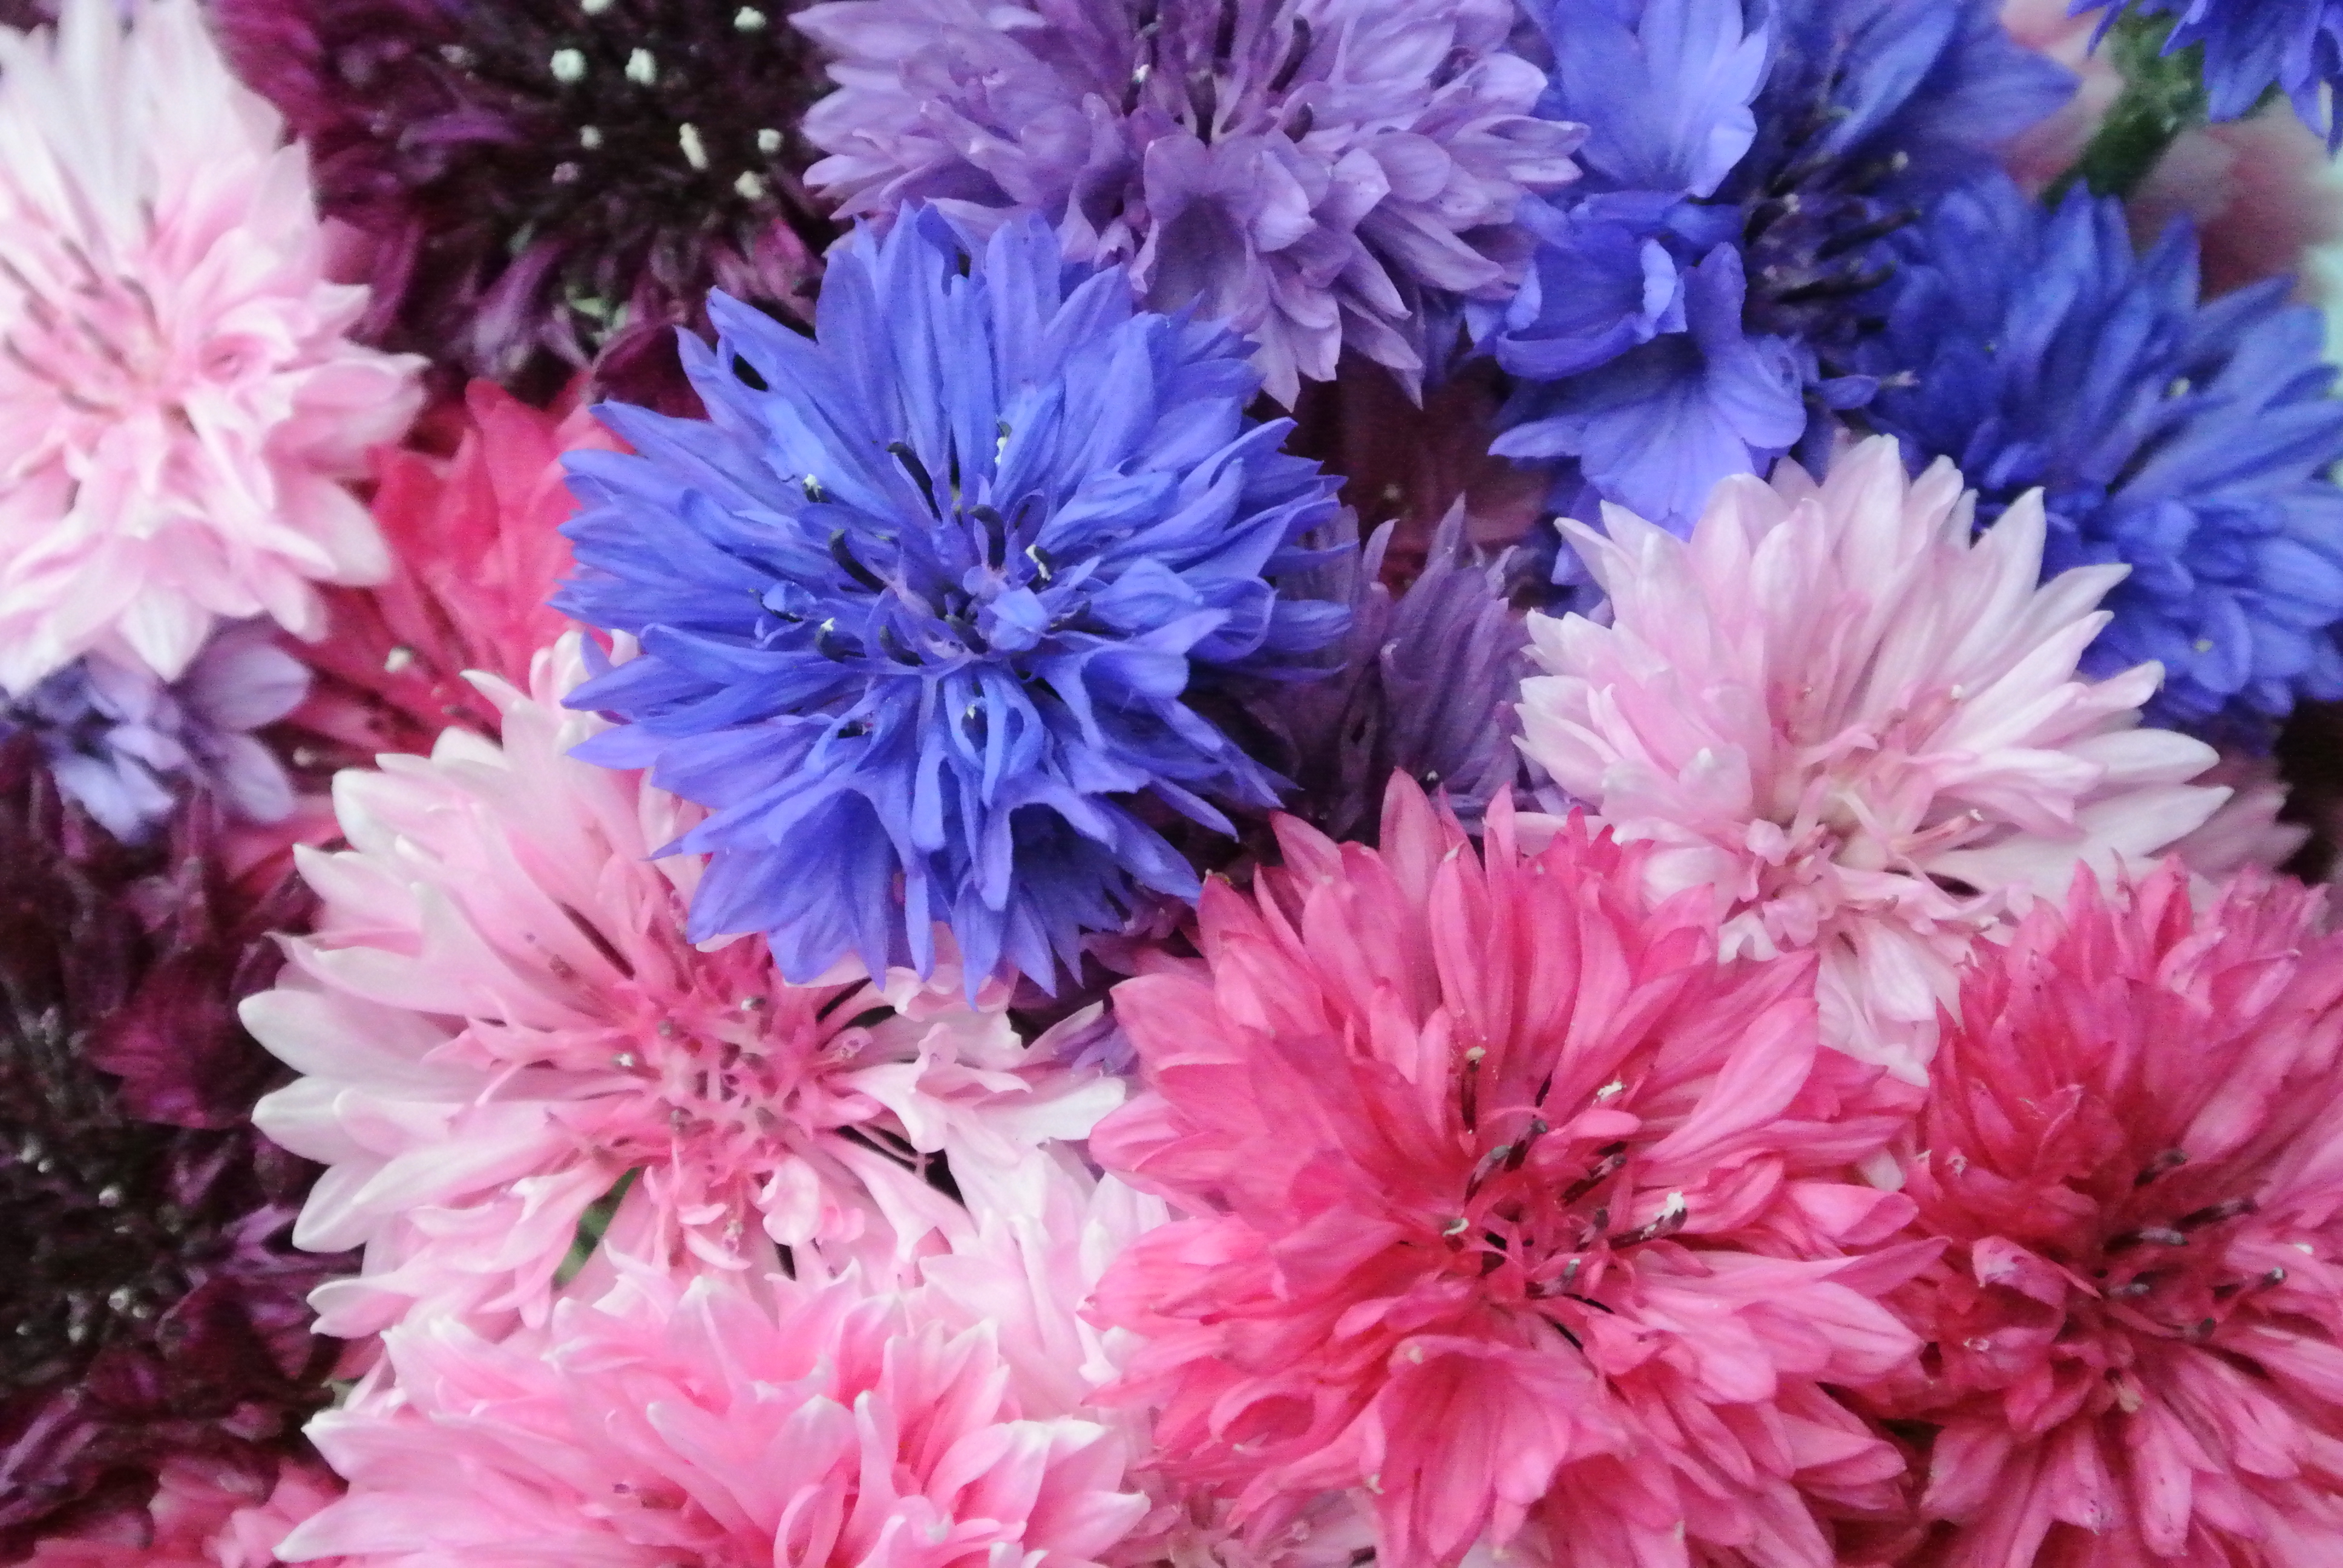 It's a cornflower day today – mostly pink cornflowers